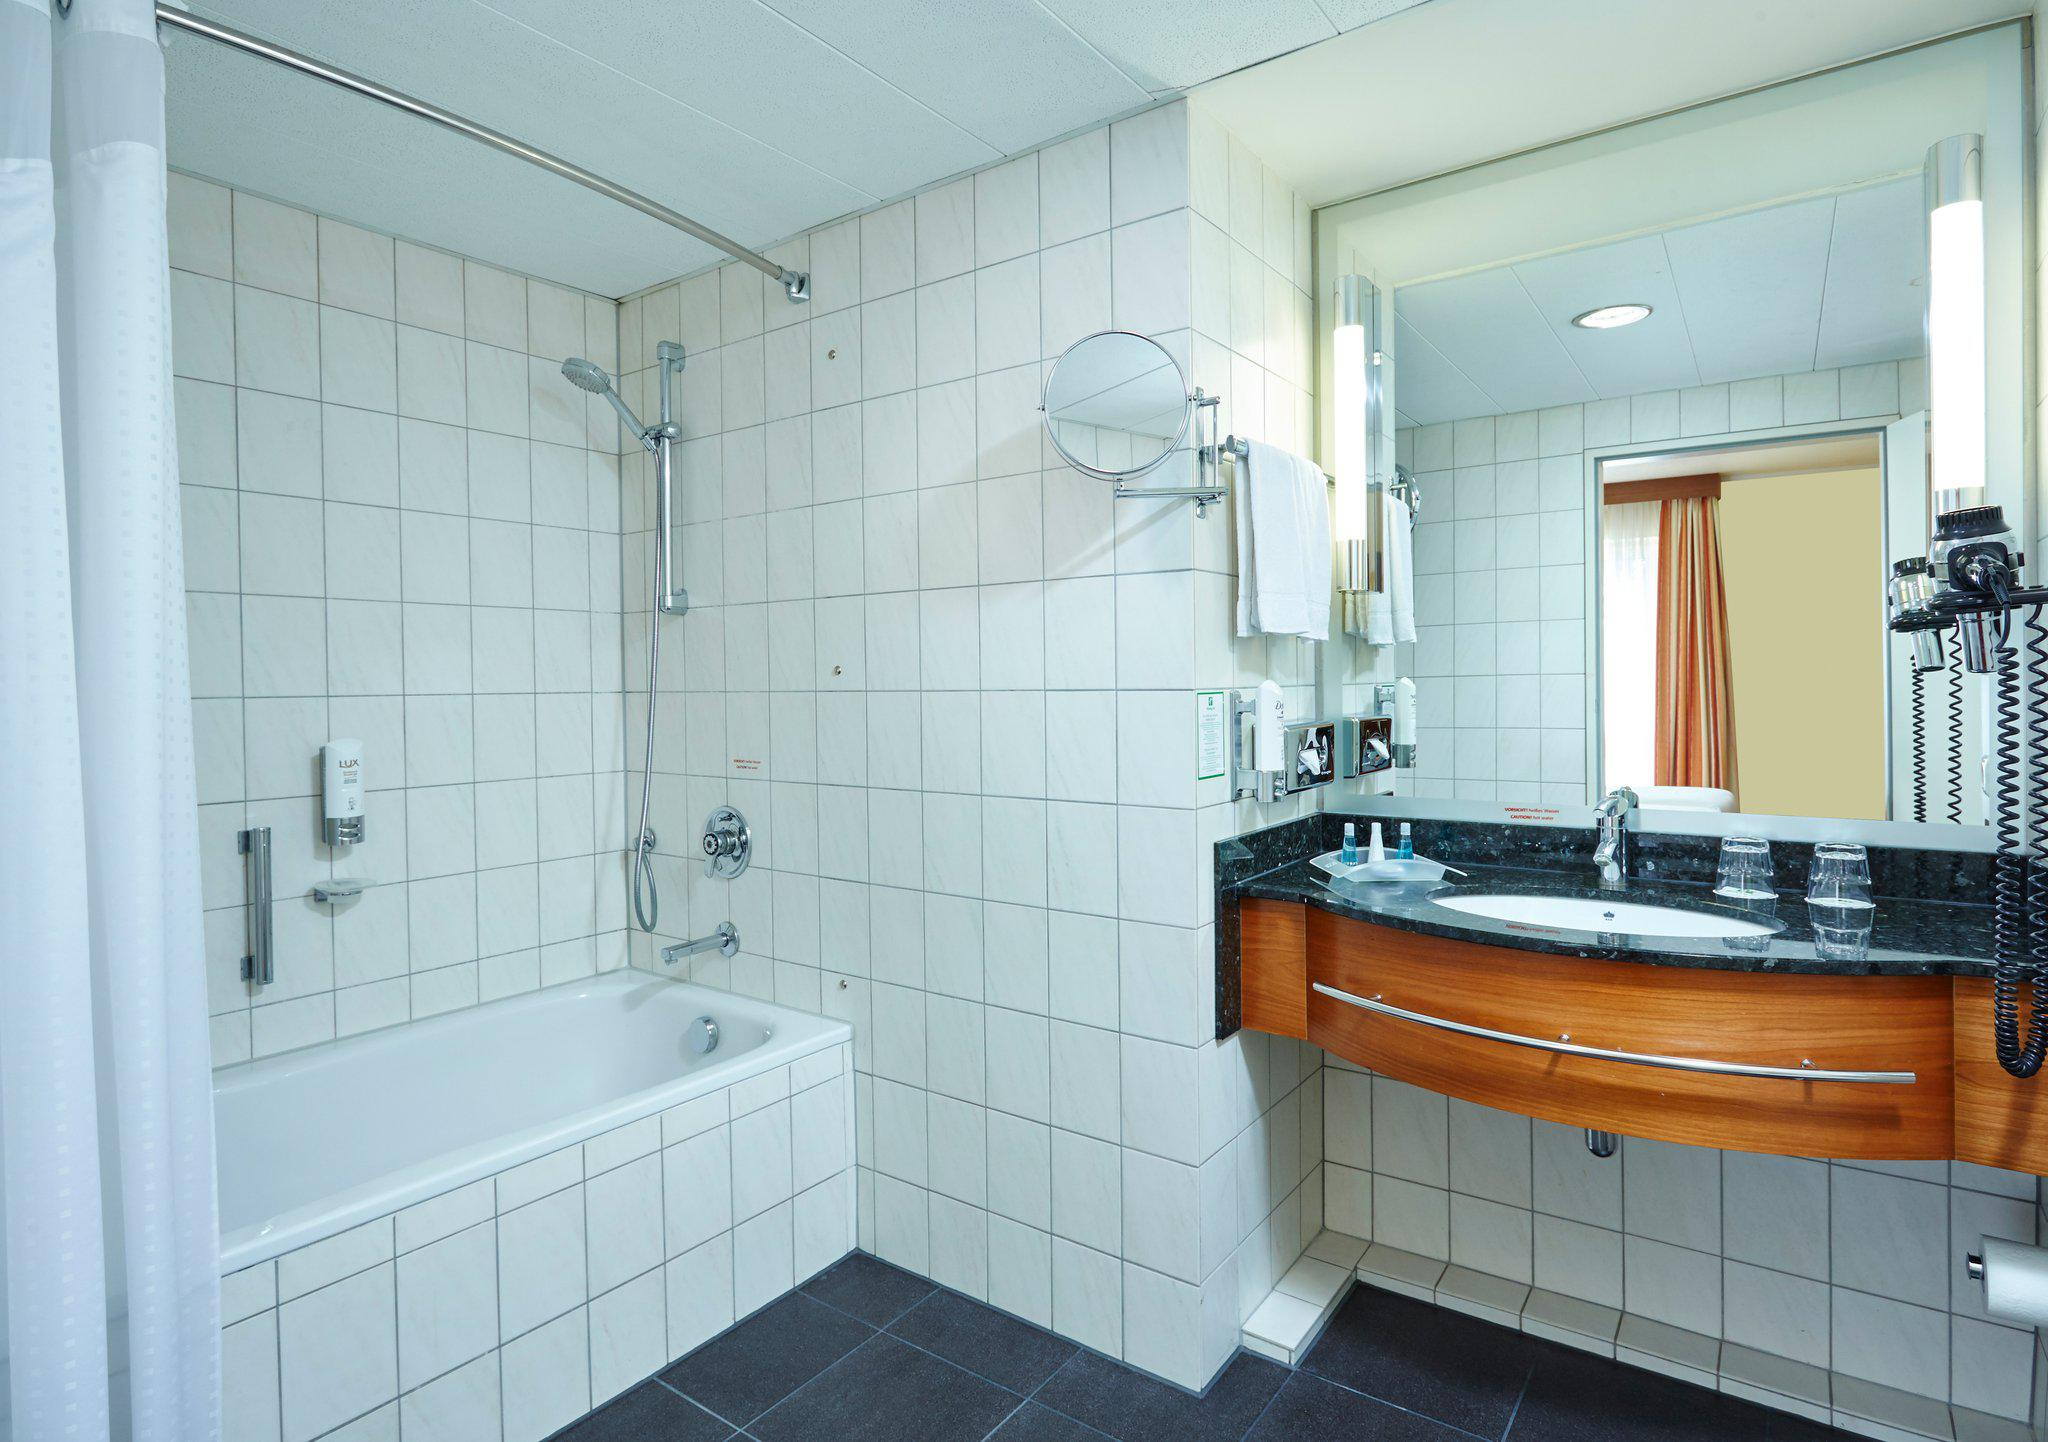 Bilder Holiday Inn Lubeck